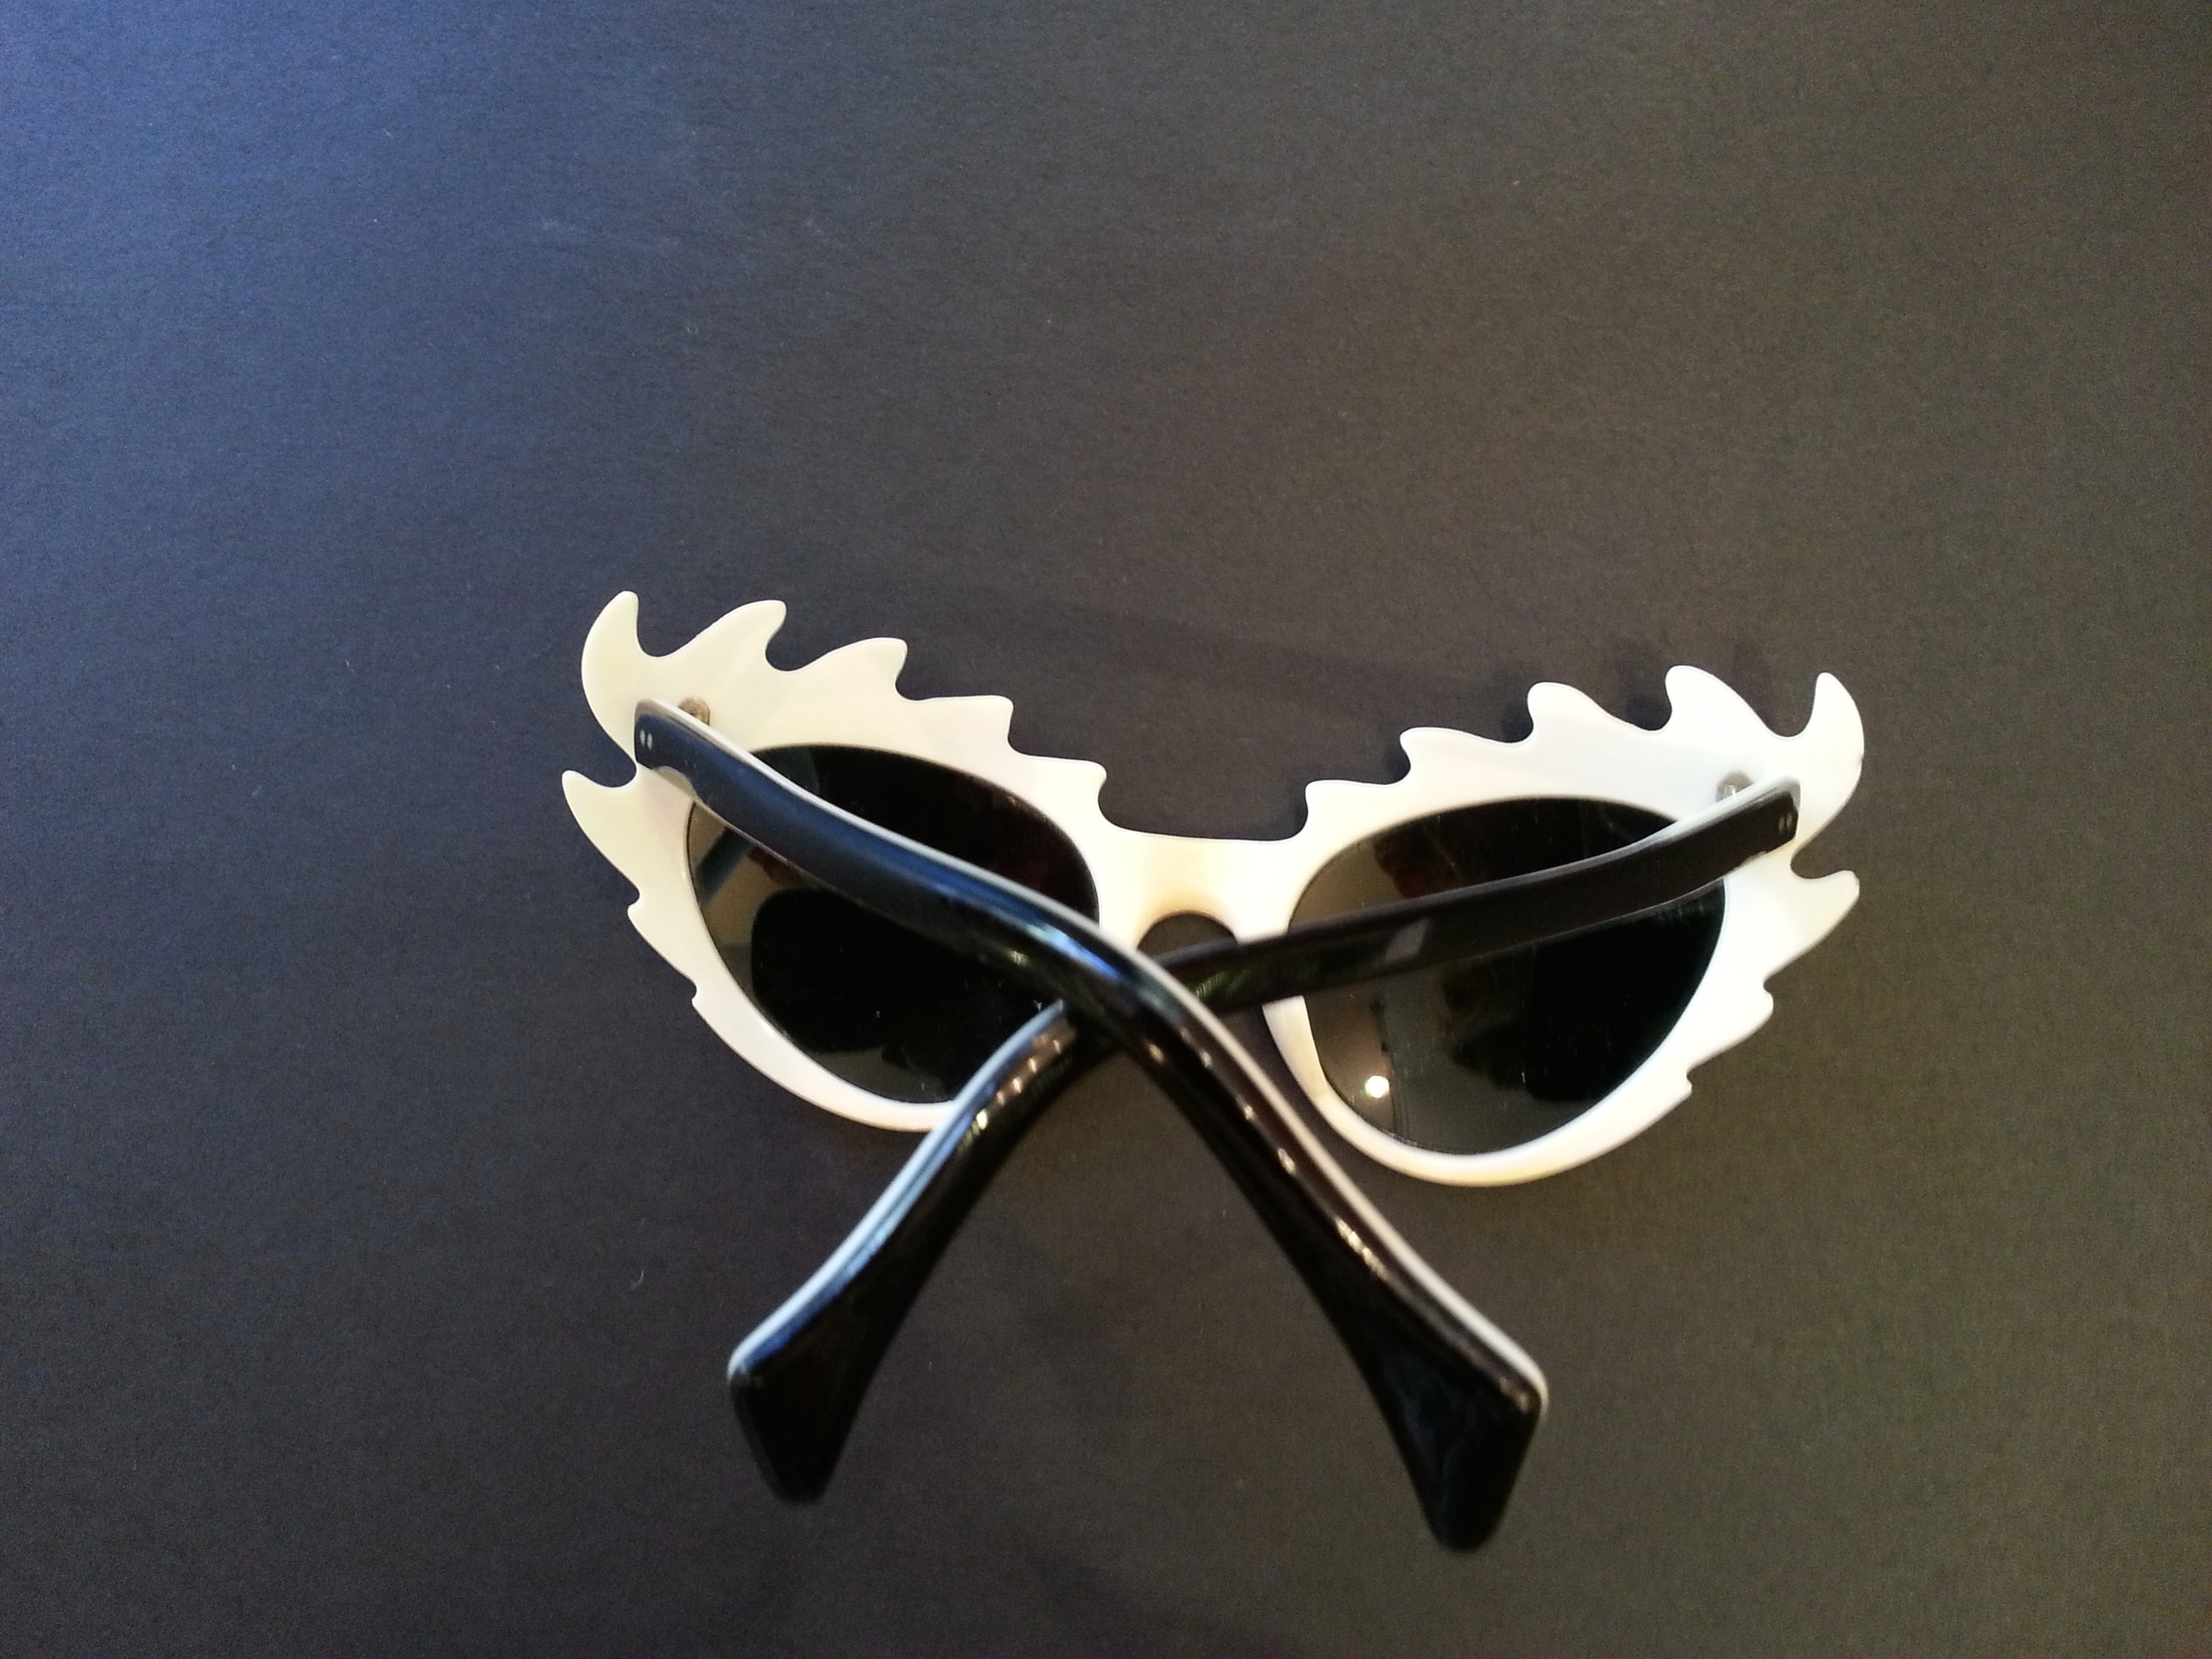 01aecd8270b Outrageous 1950 s Sunglasses with Black Flames   White on Reverse ...